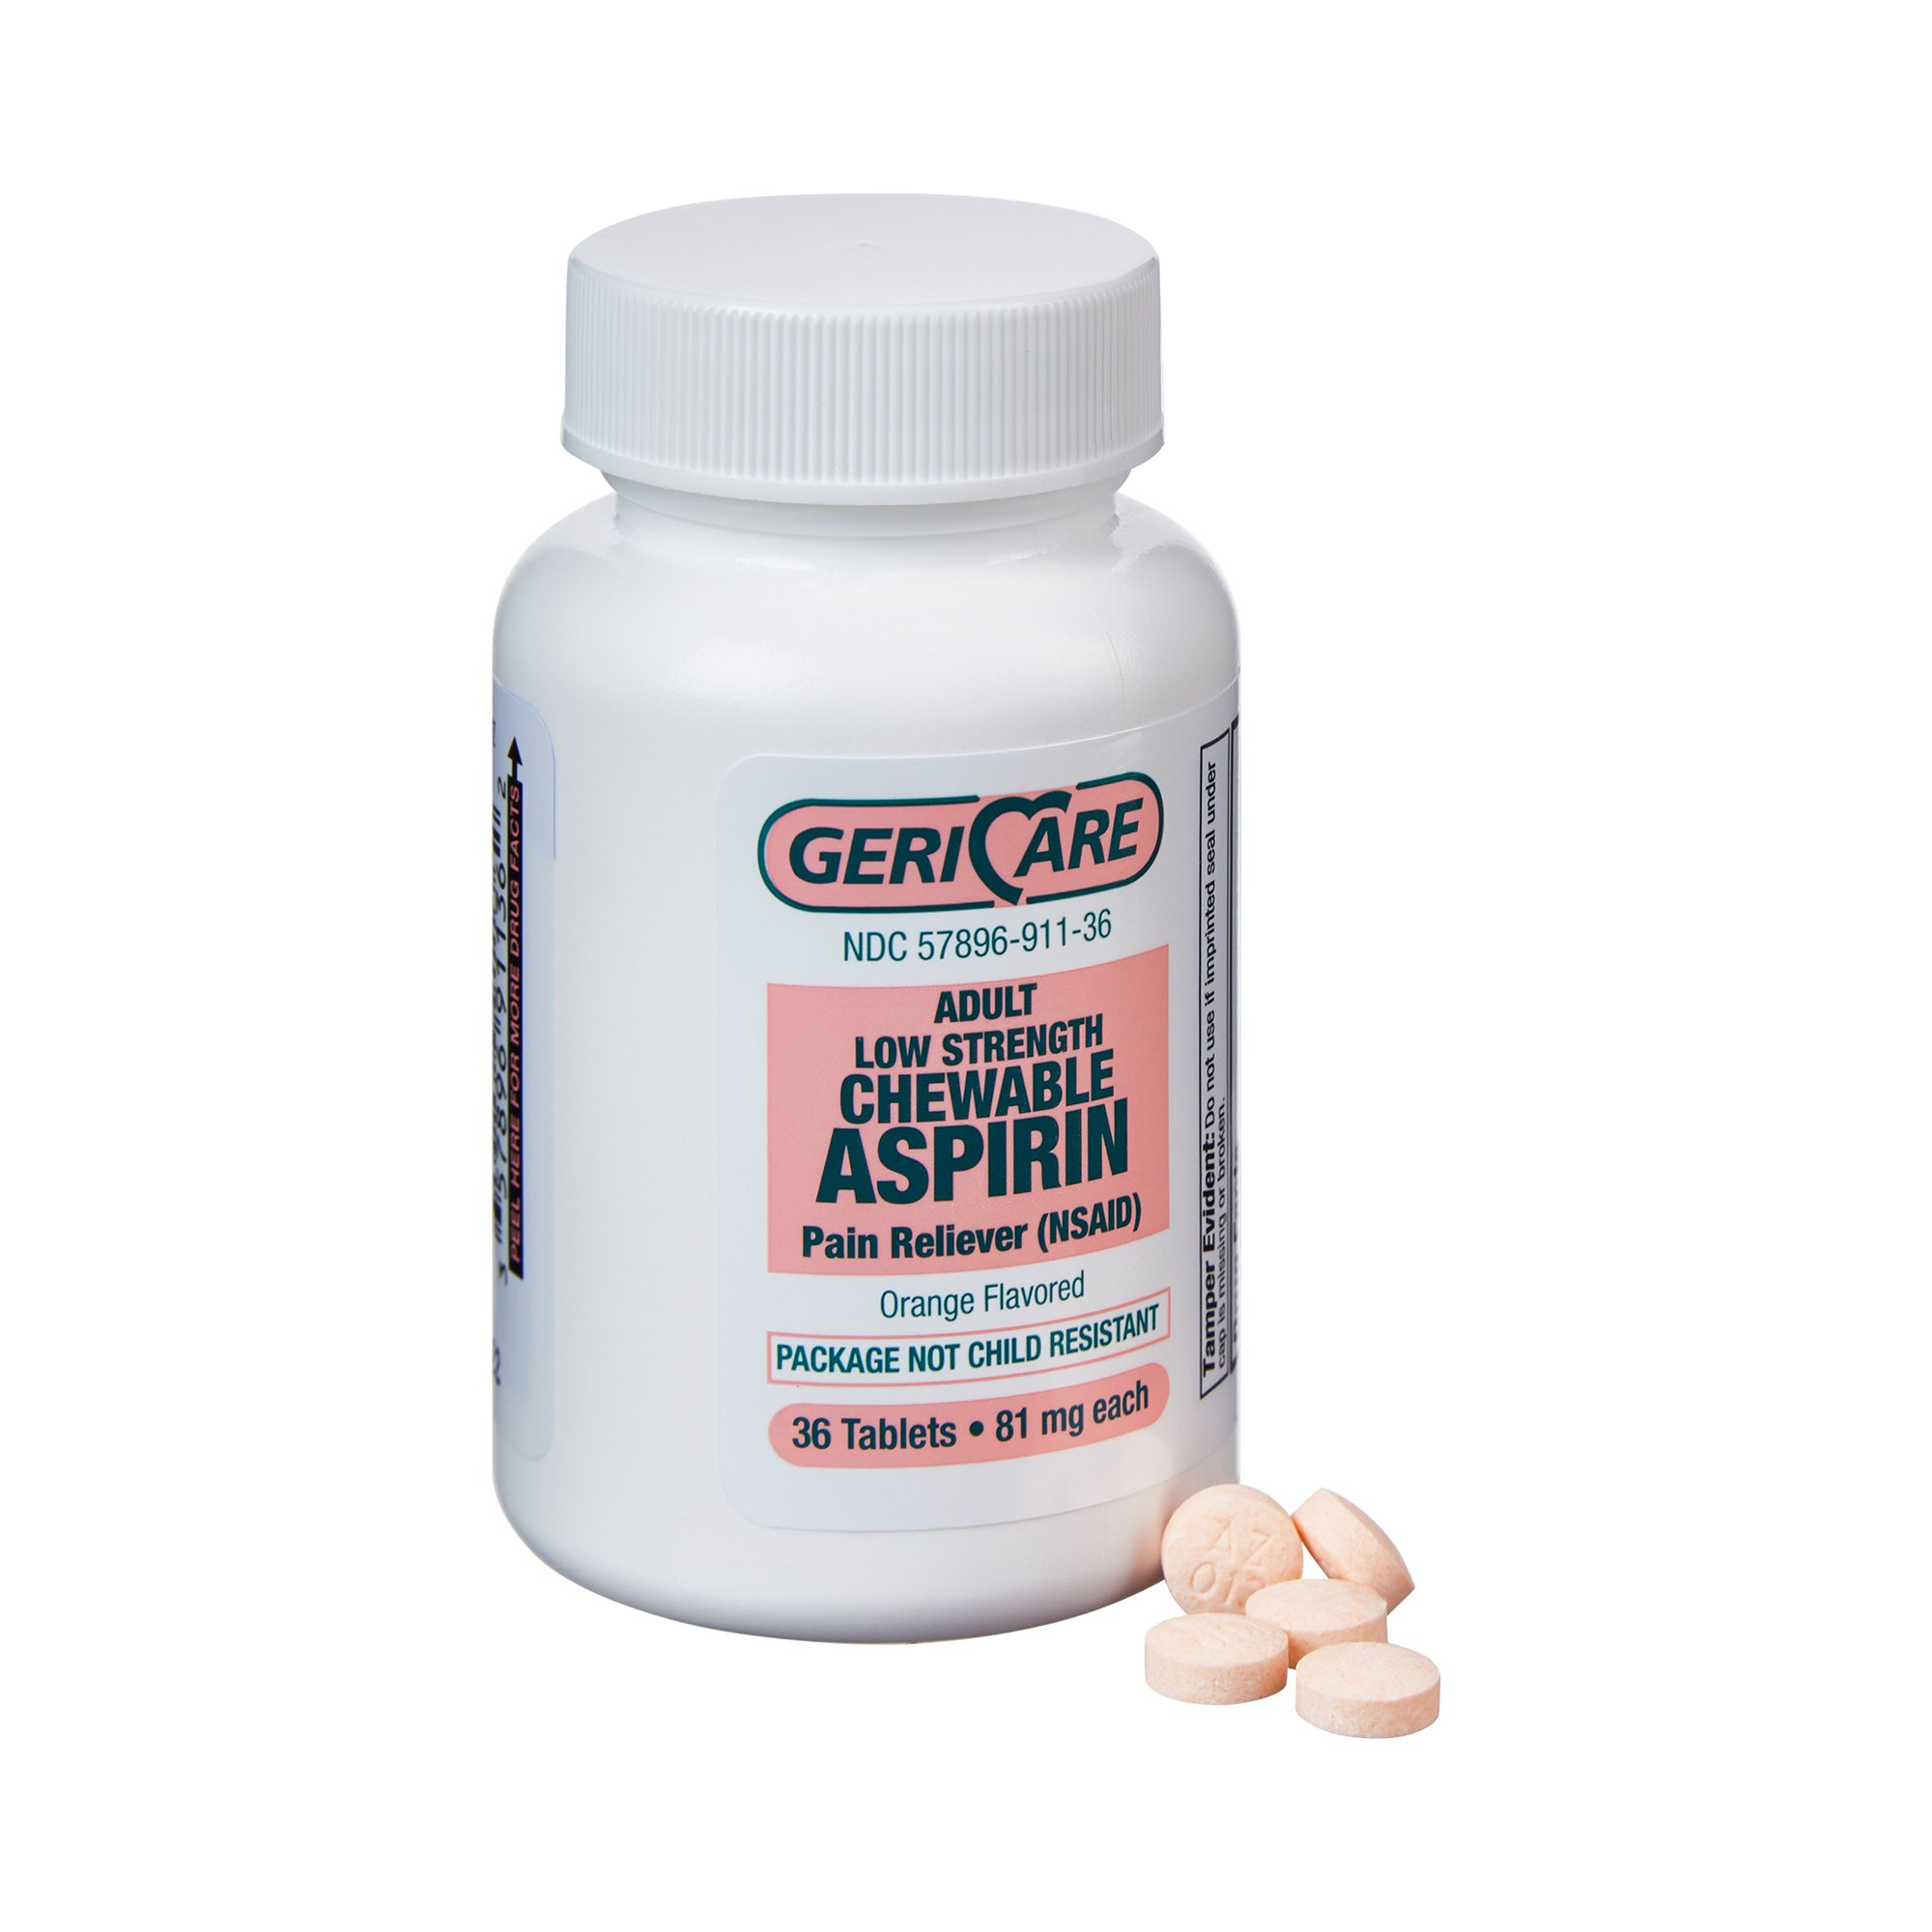 Geri-Care Adult Low Strength Chewable Aspirin Pain Reliever, 81 mg., 911-36-GCP, Case of 12